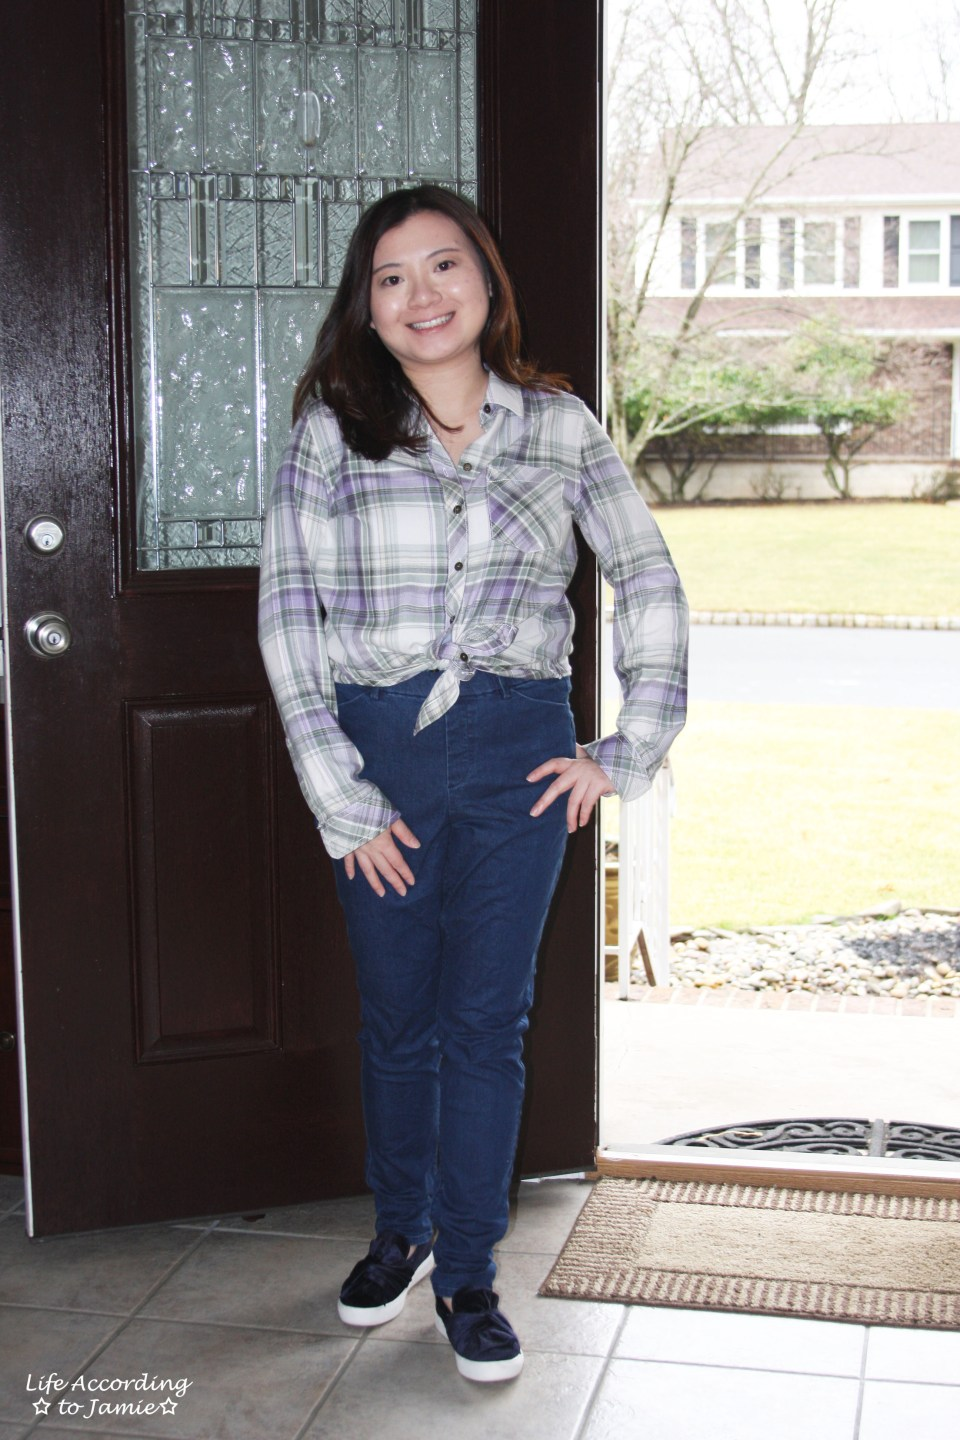 Tied Plaid Top + High Waisted Jeans 4